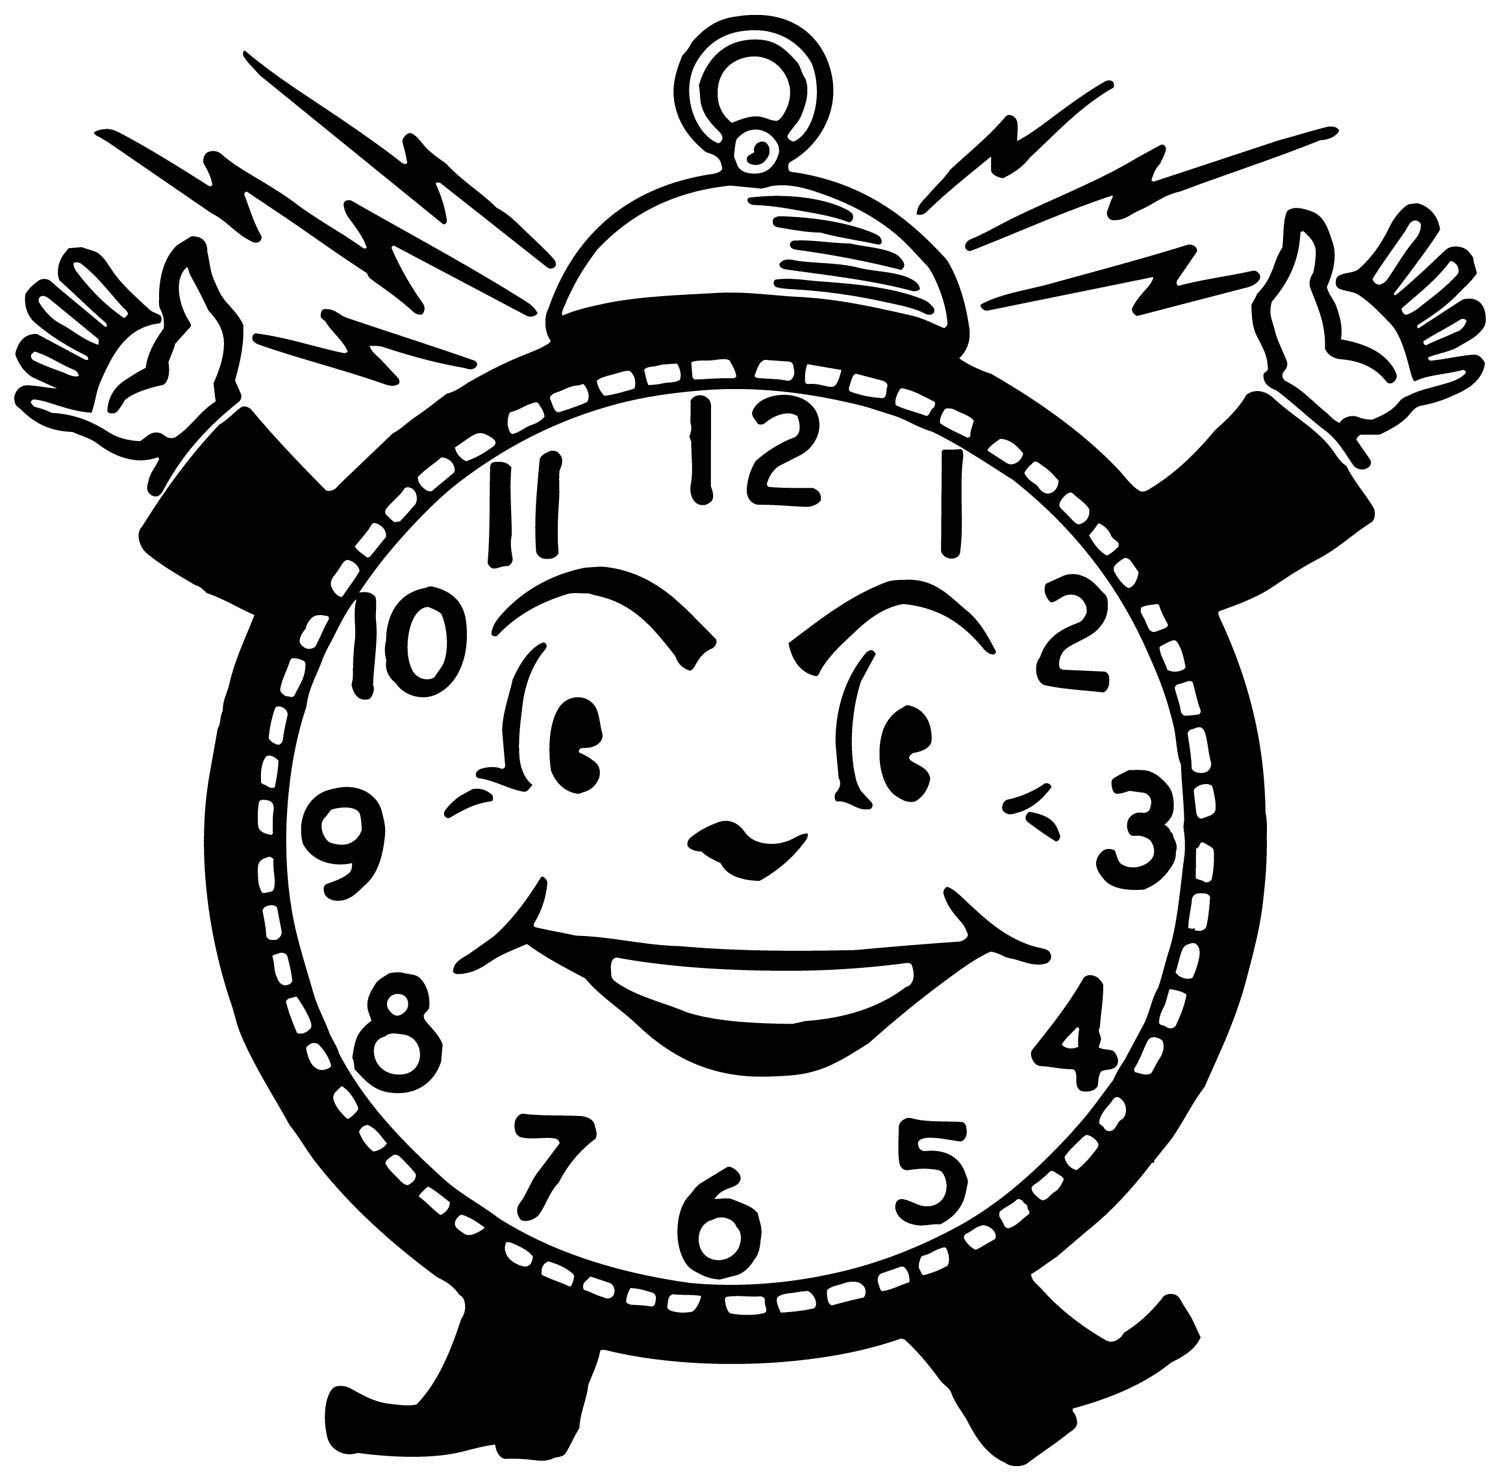 Timing Instruction On New Thinking Time Method Being